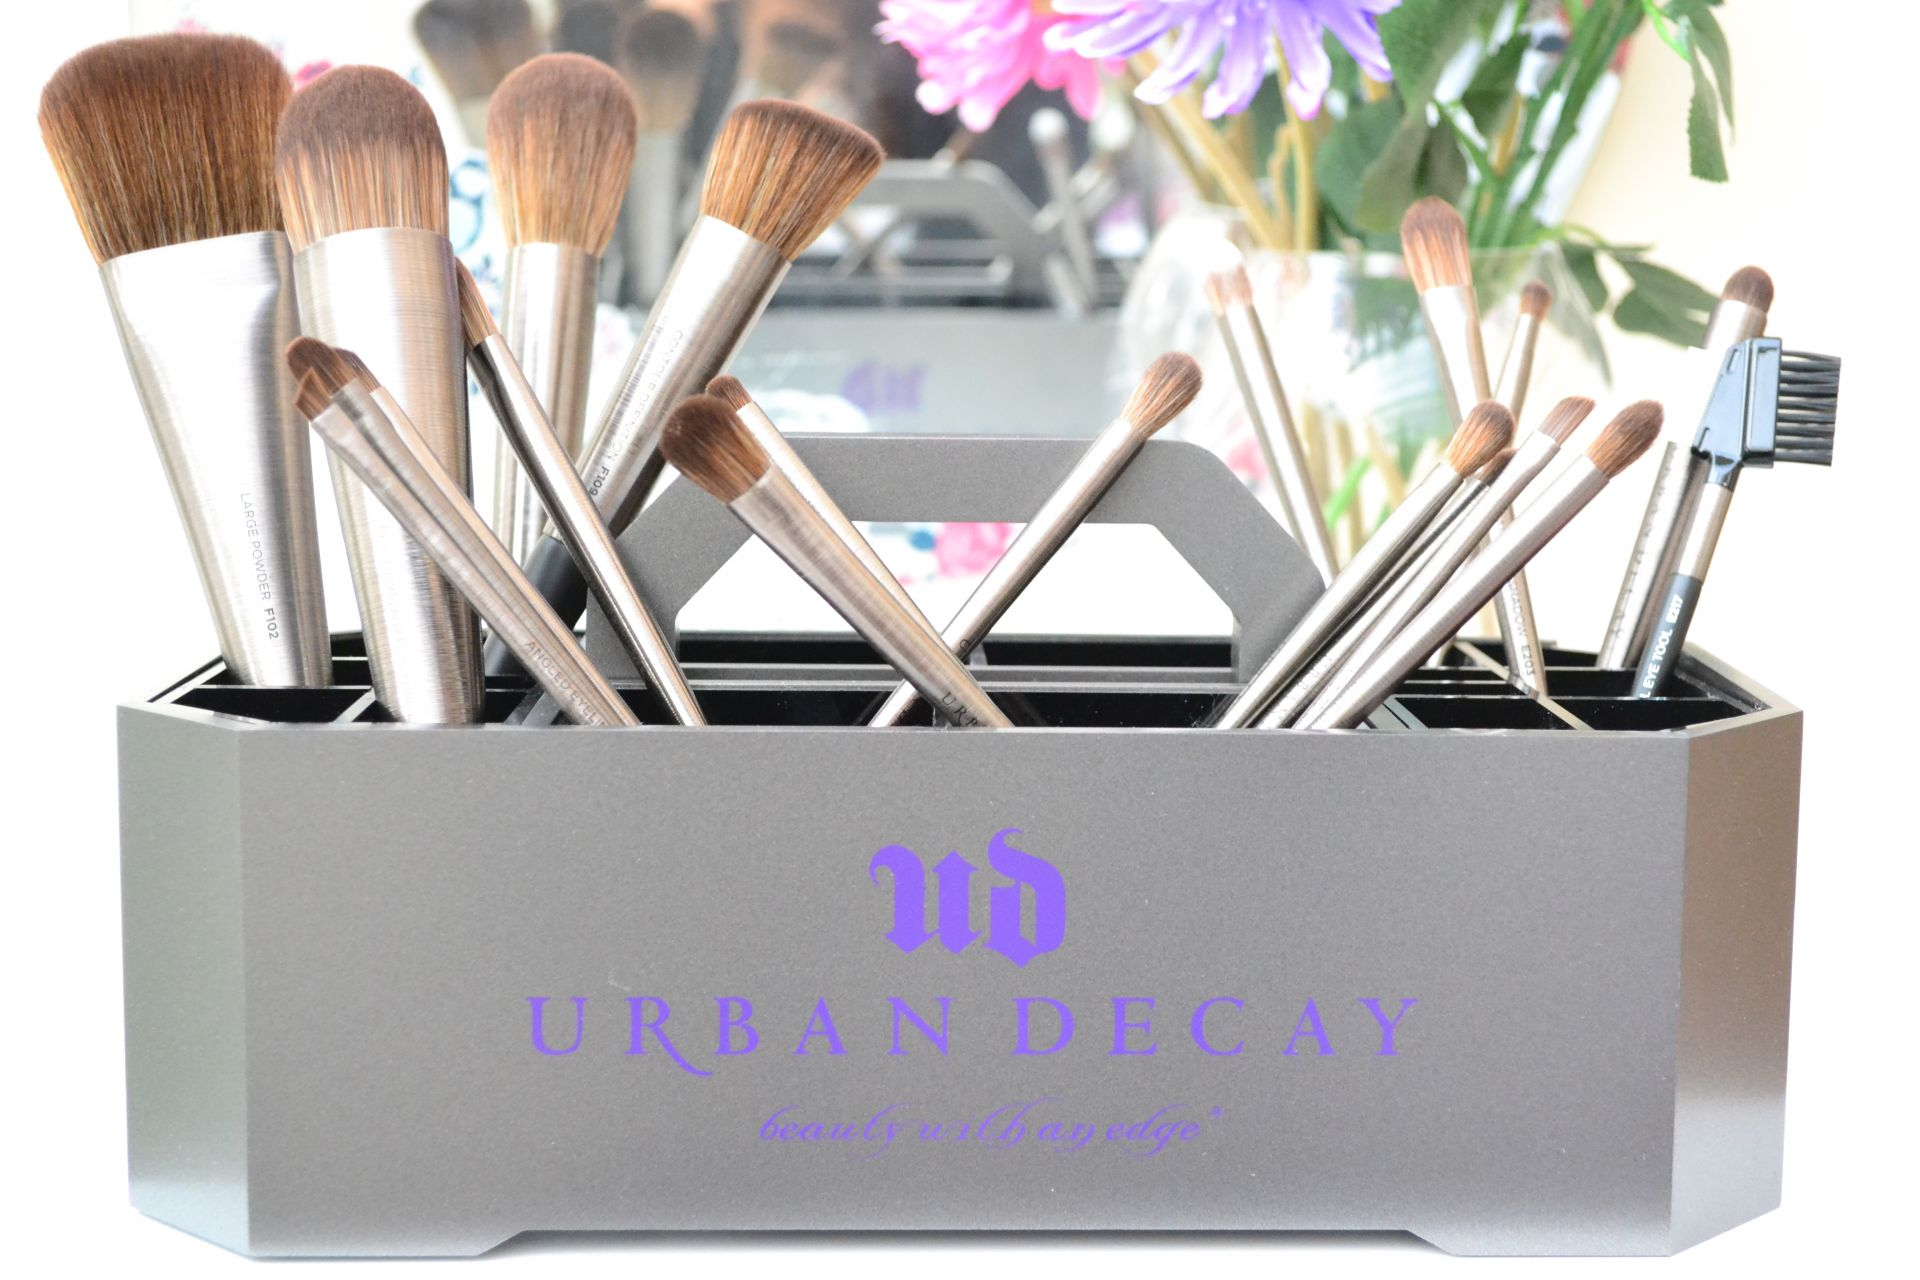 Urban decay pro brushes review sprinkles of style for Perfect drink pro review